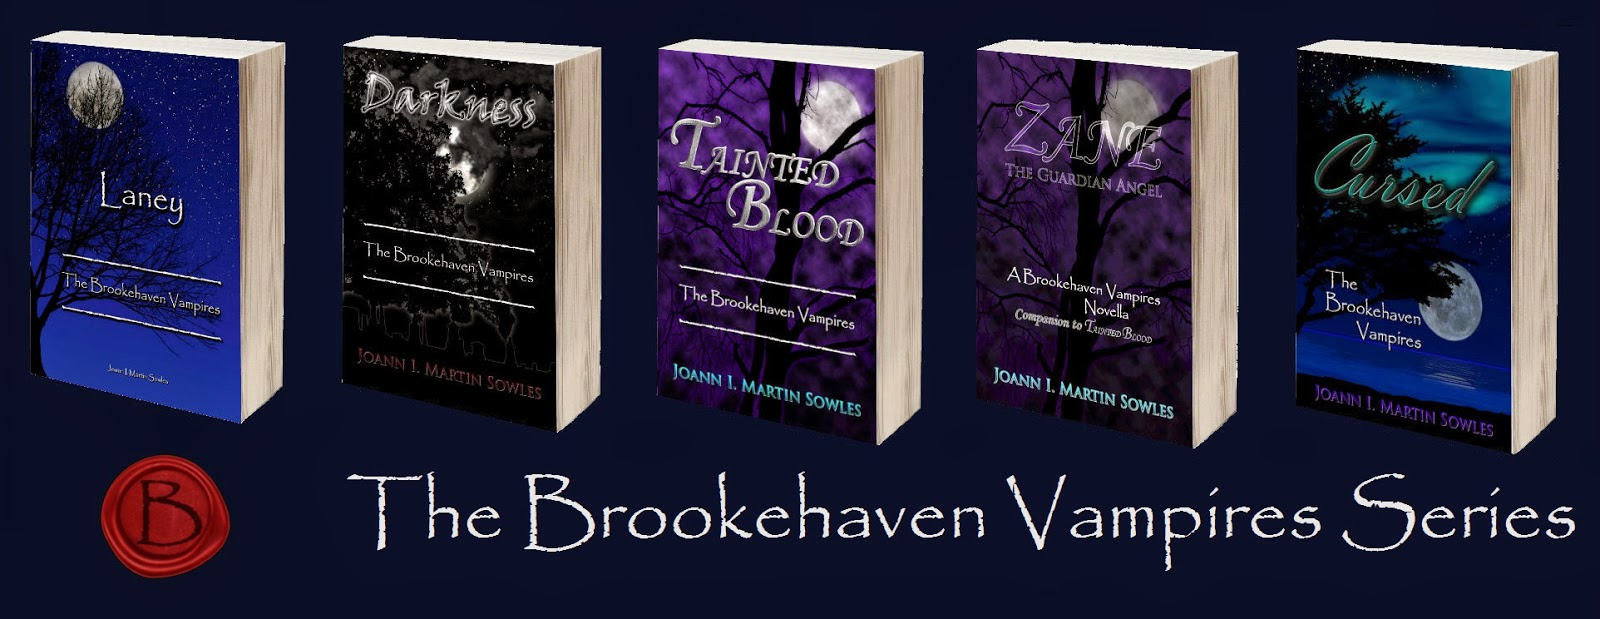 http://www.amazon.com/Laney-The-Brookehaven-Vampires-1-ebook/dp/B004APA600/ref=pd_sim_kstore_3?ie=UTF8&refRID=05ET6BVGTAK62YDR7NKA